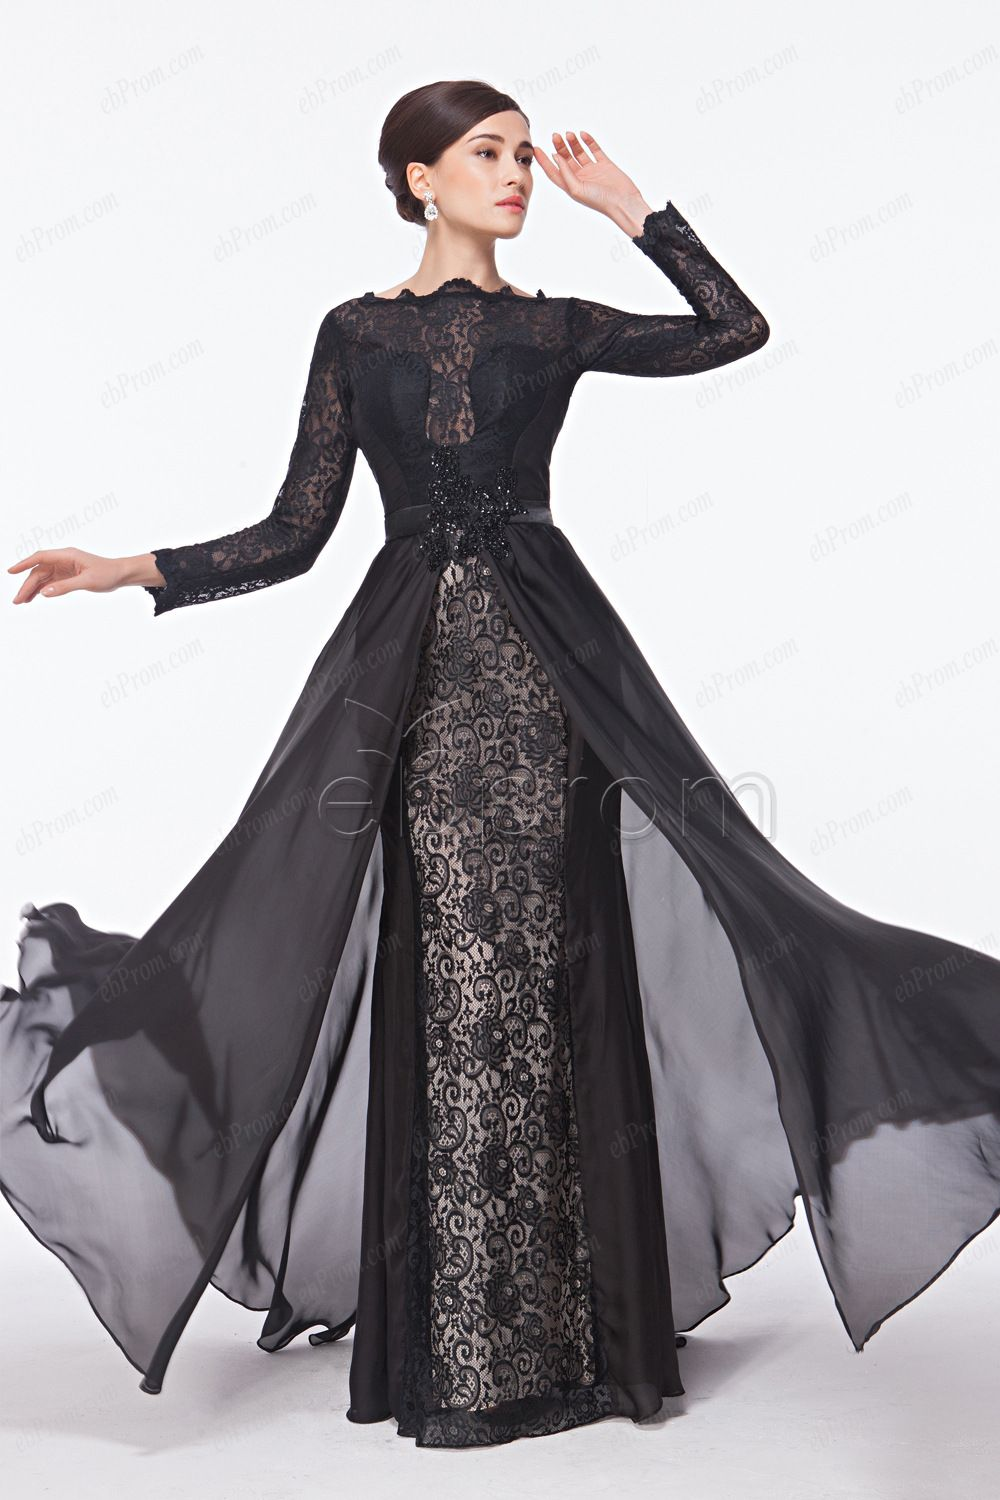 Modest long sleeve evening dresses